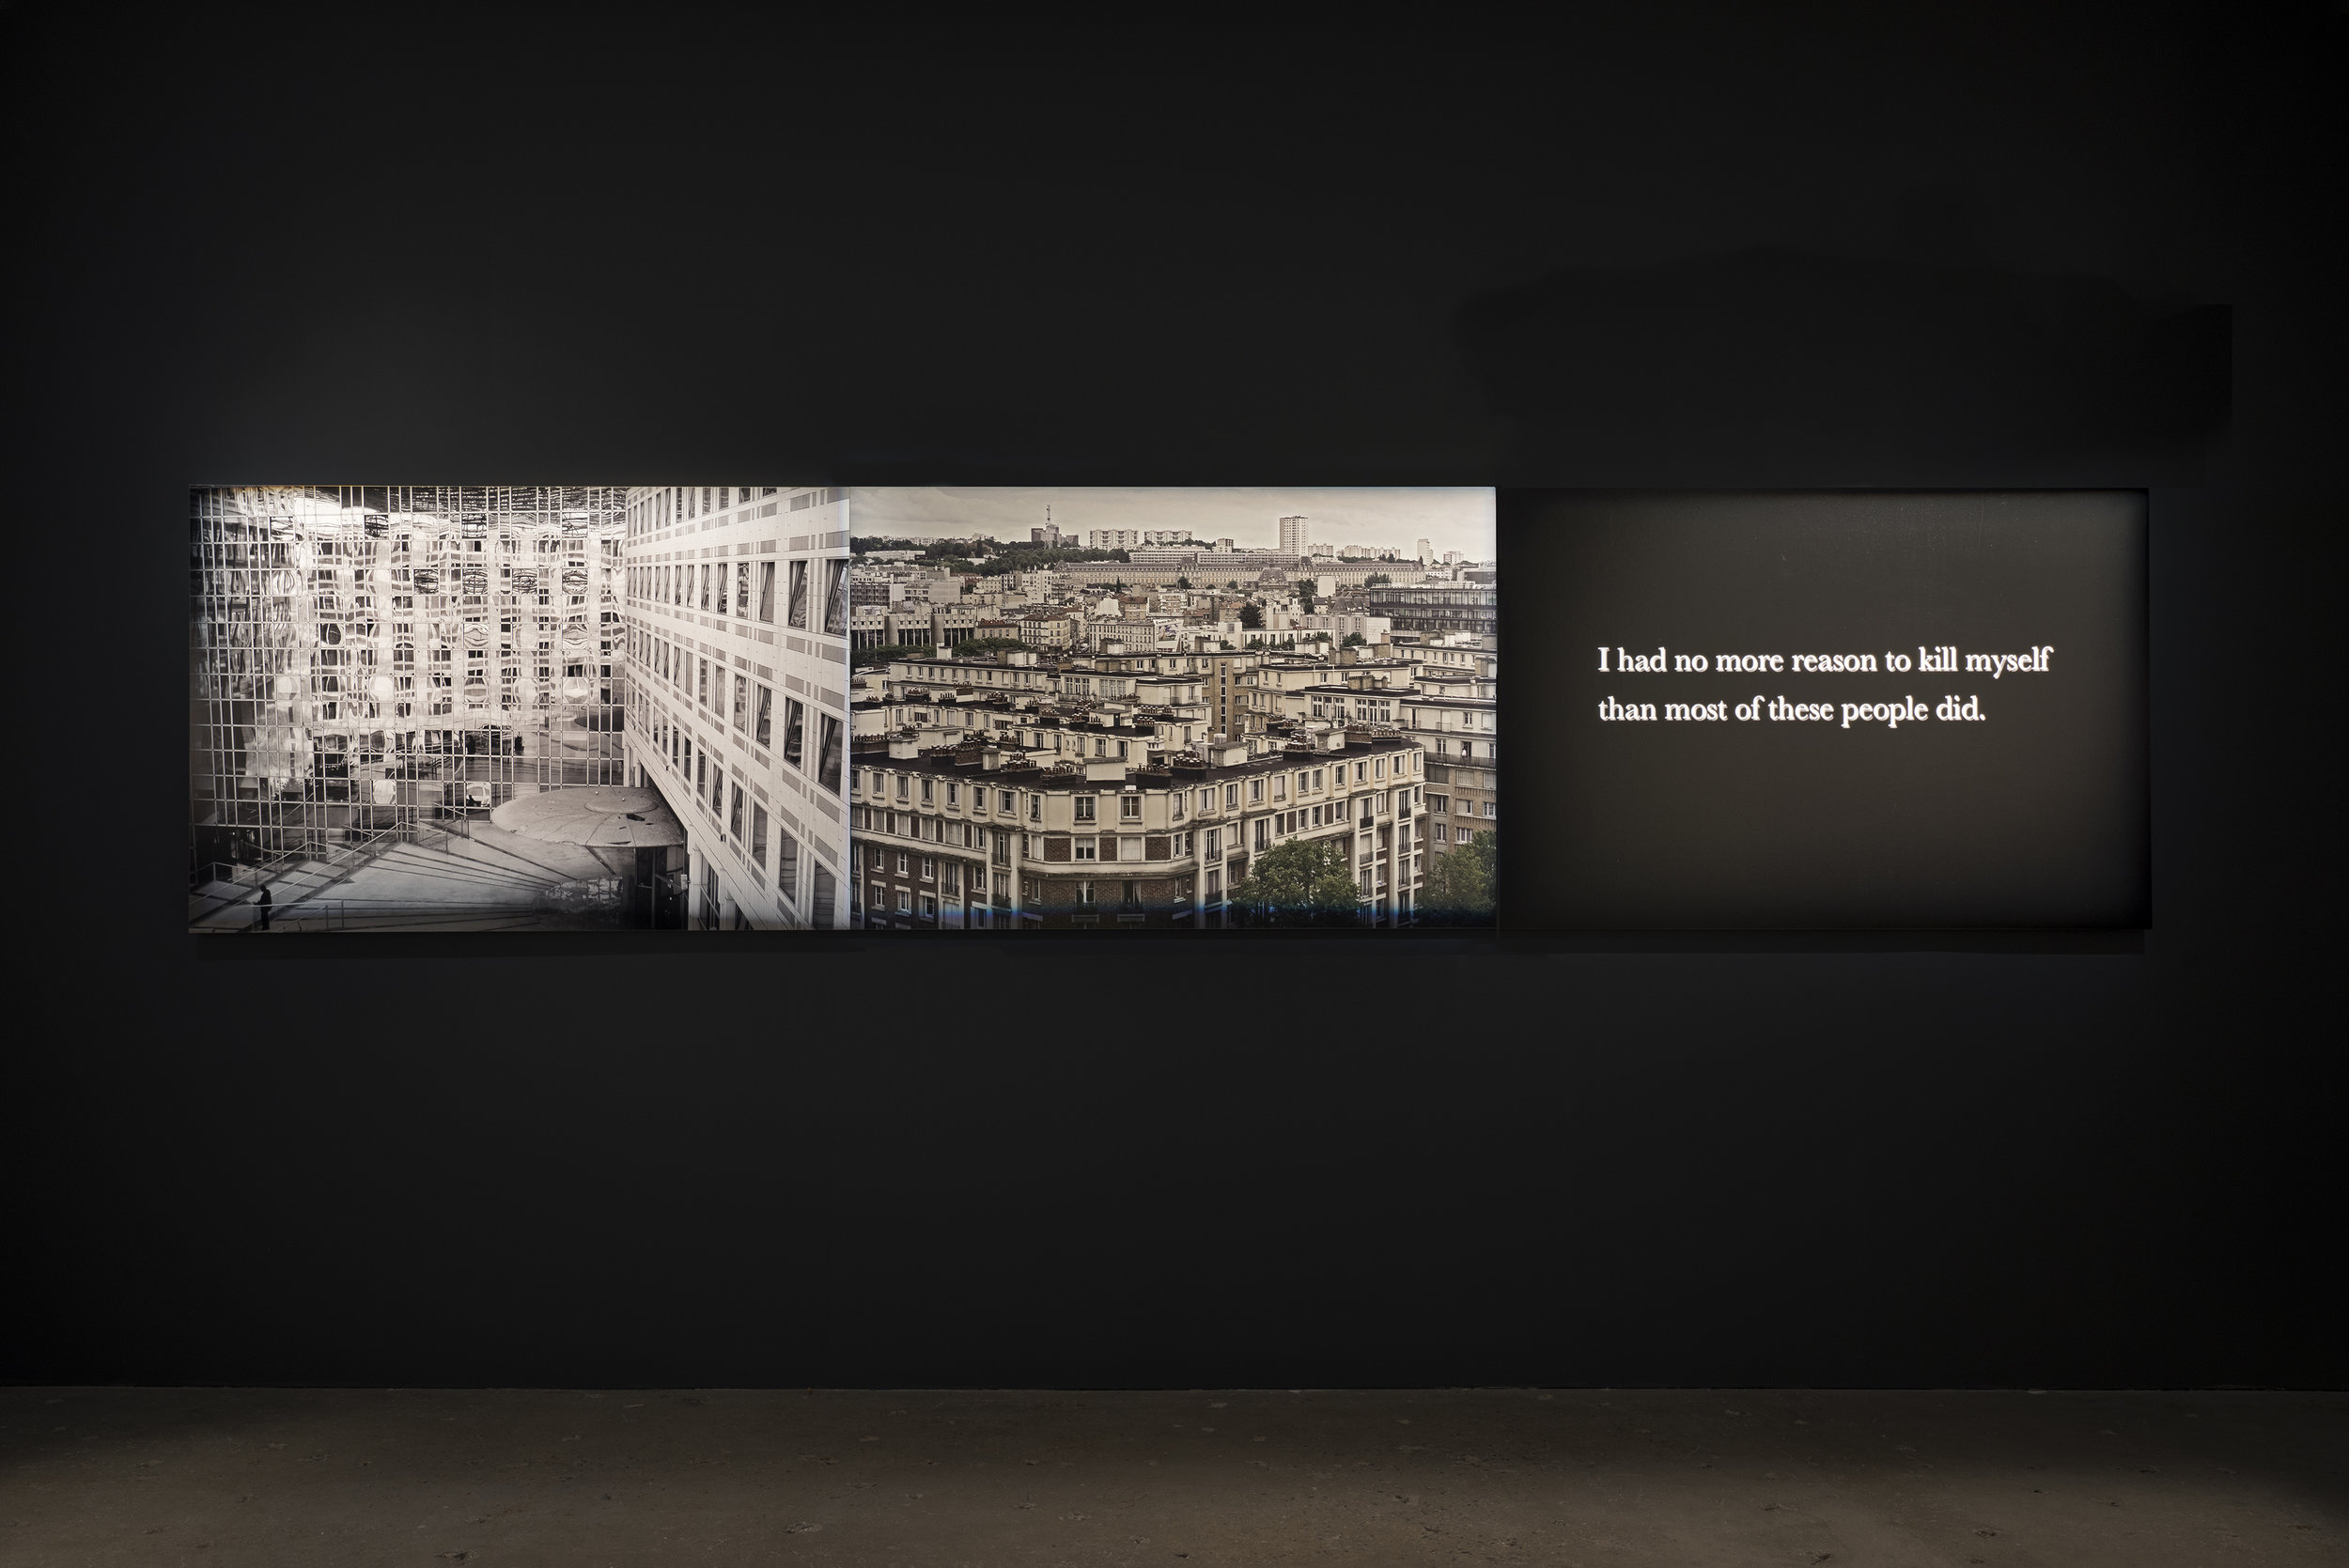 """Michel Houellebecq, """"France #008–France #009–I had..."""" (2017). Triptych: 3 pigment prints on Baryta paper mounted on aluminum all: 39 3/16 x 172 7/16 in (99.5 x 438 cm) each: 39 3/16 x 57 1/2 in (99.5 x 146 cm)"""